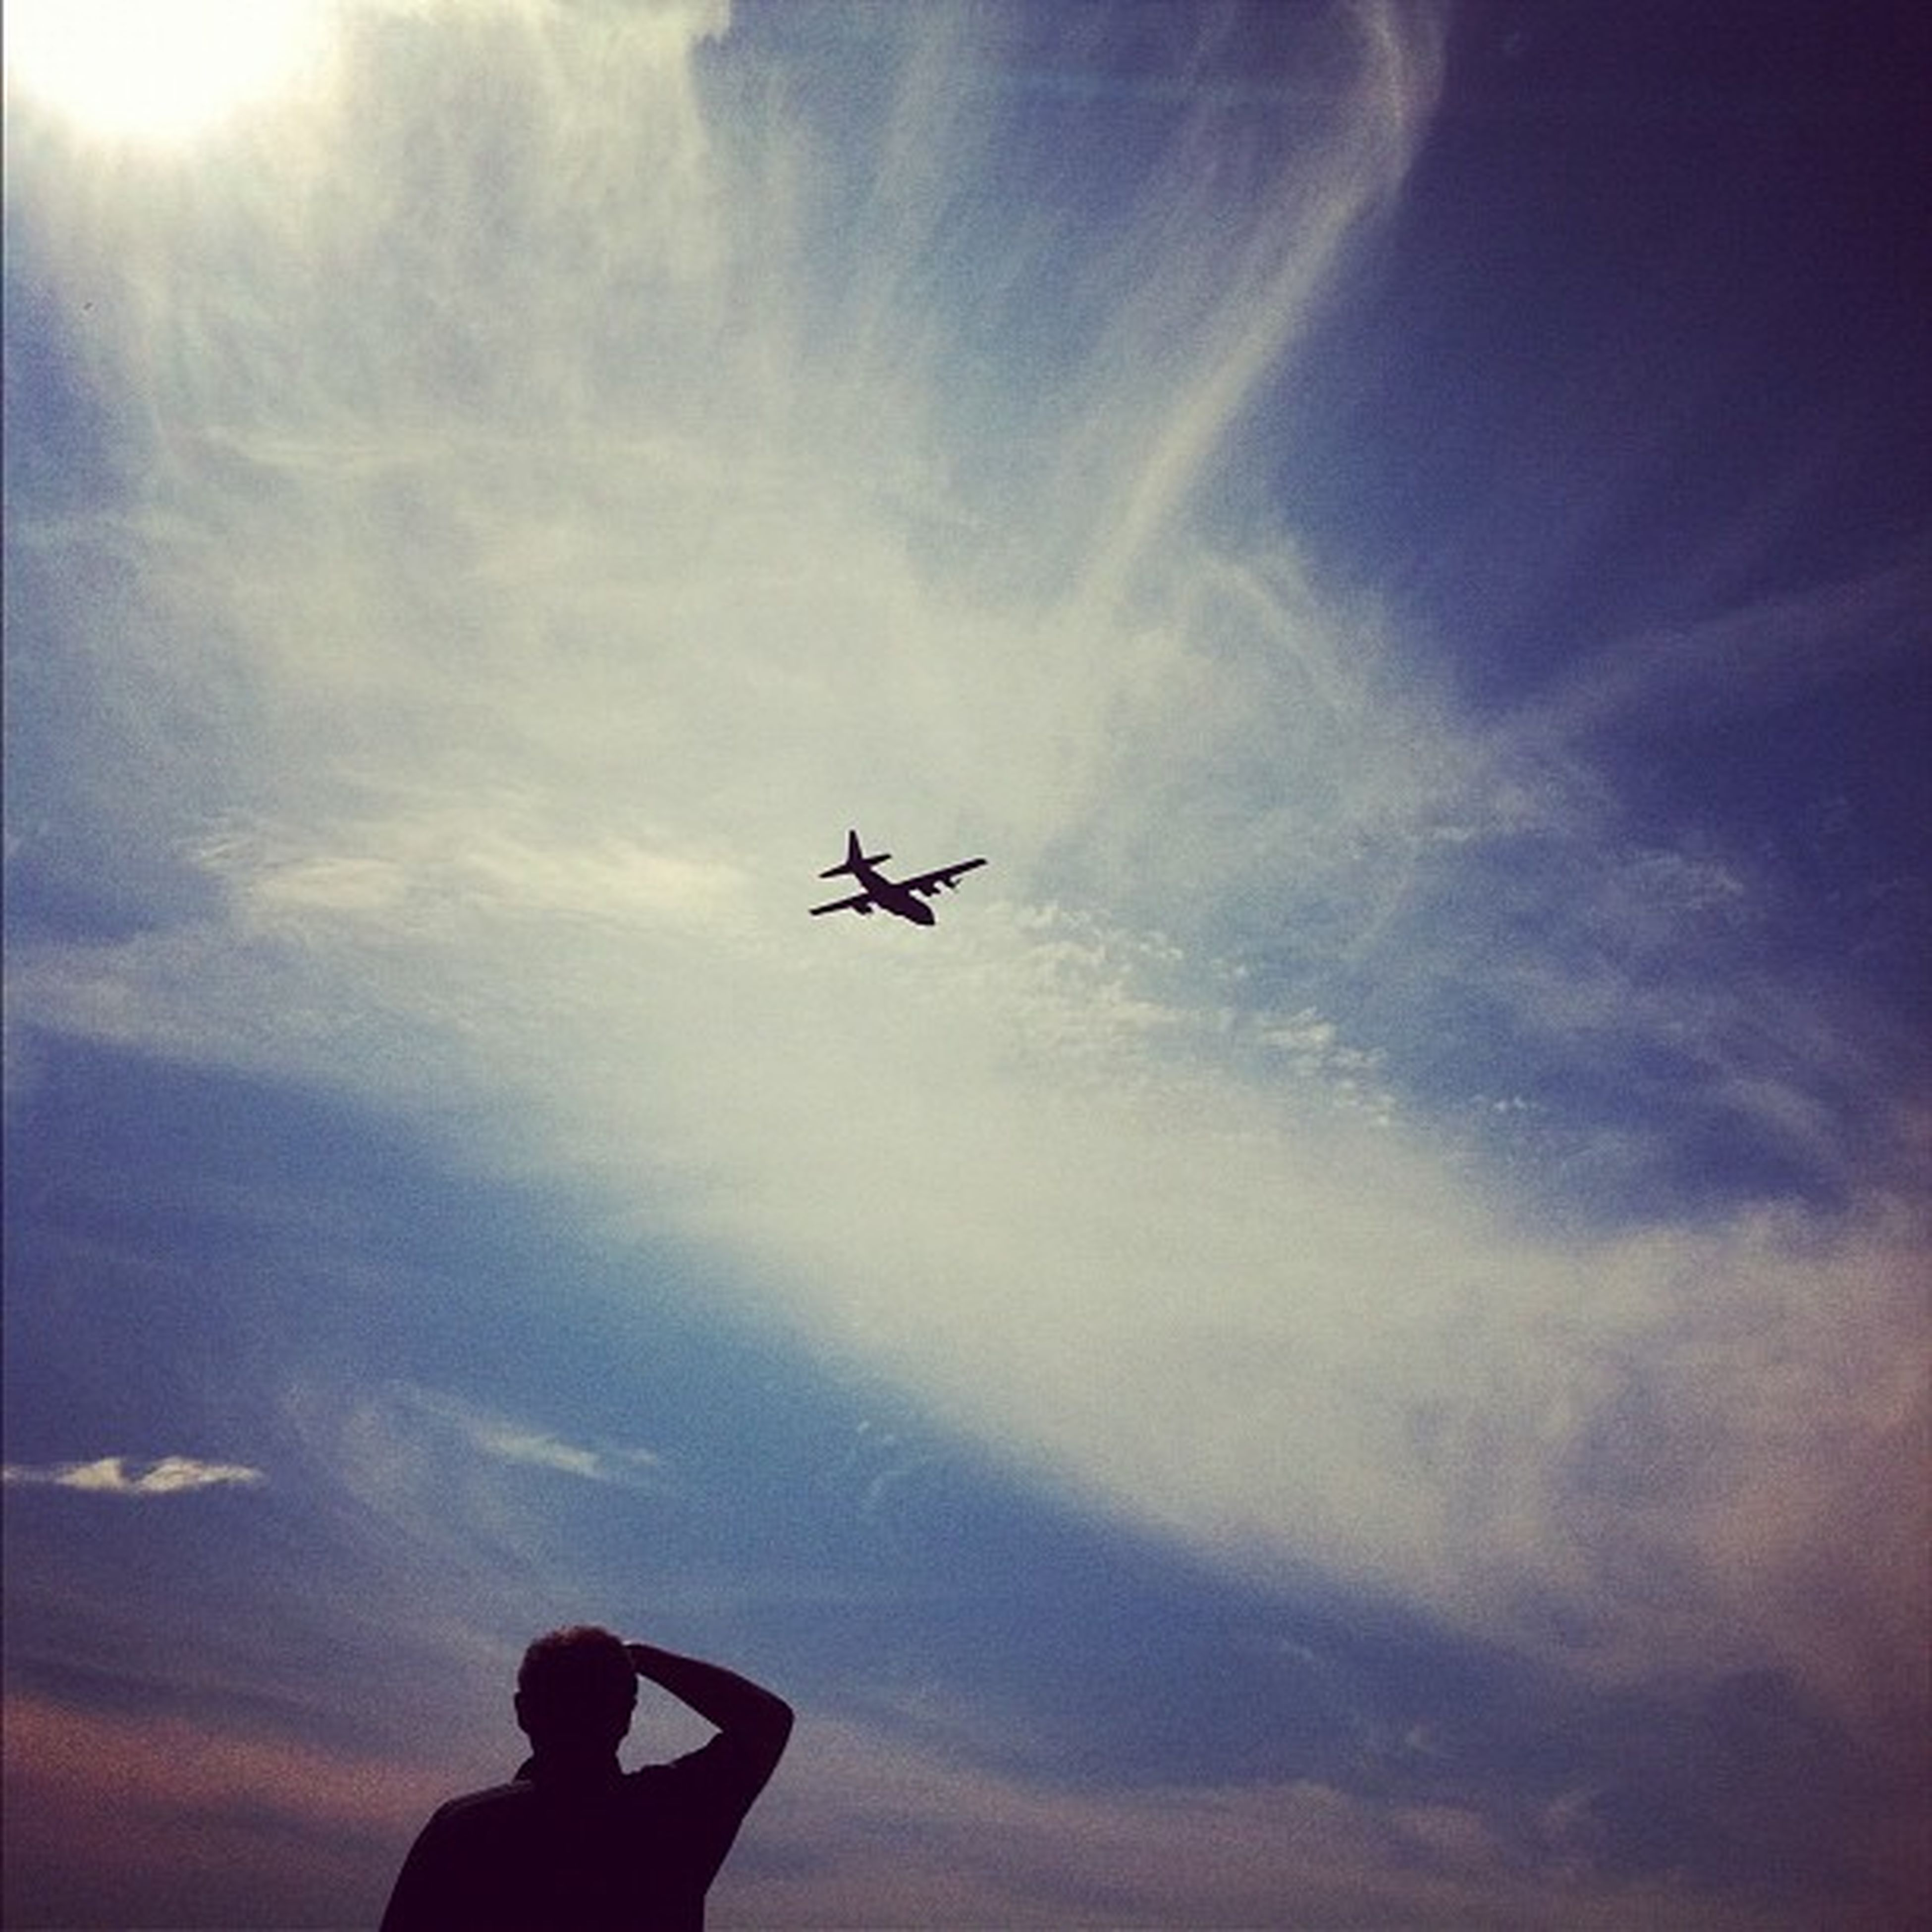 transportation, low angle view, airplane, sky, silhouette, air vehicle, mode of transport, lifestyles, leisure activity, cloud - sky, flying, mid-air, men, journey, travel, unrecognizable person, on the move, cloud